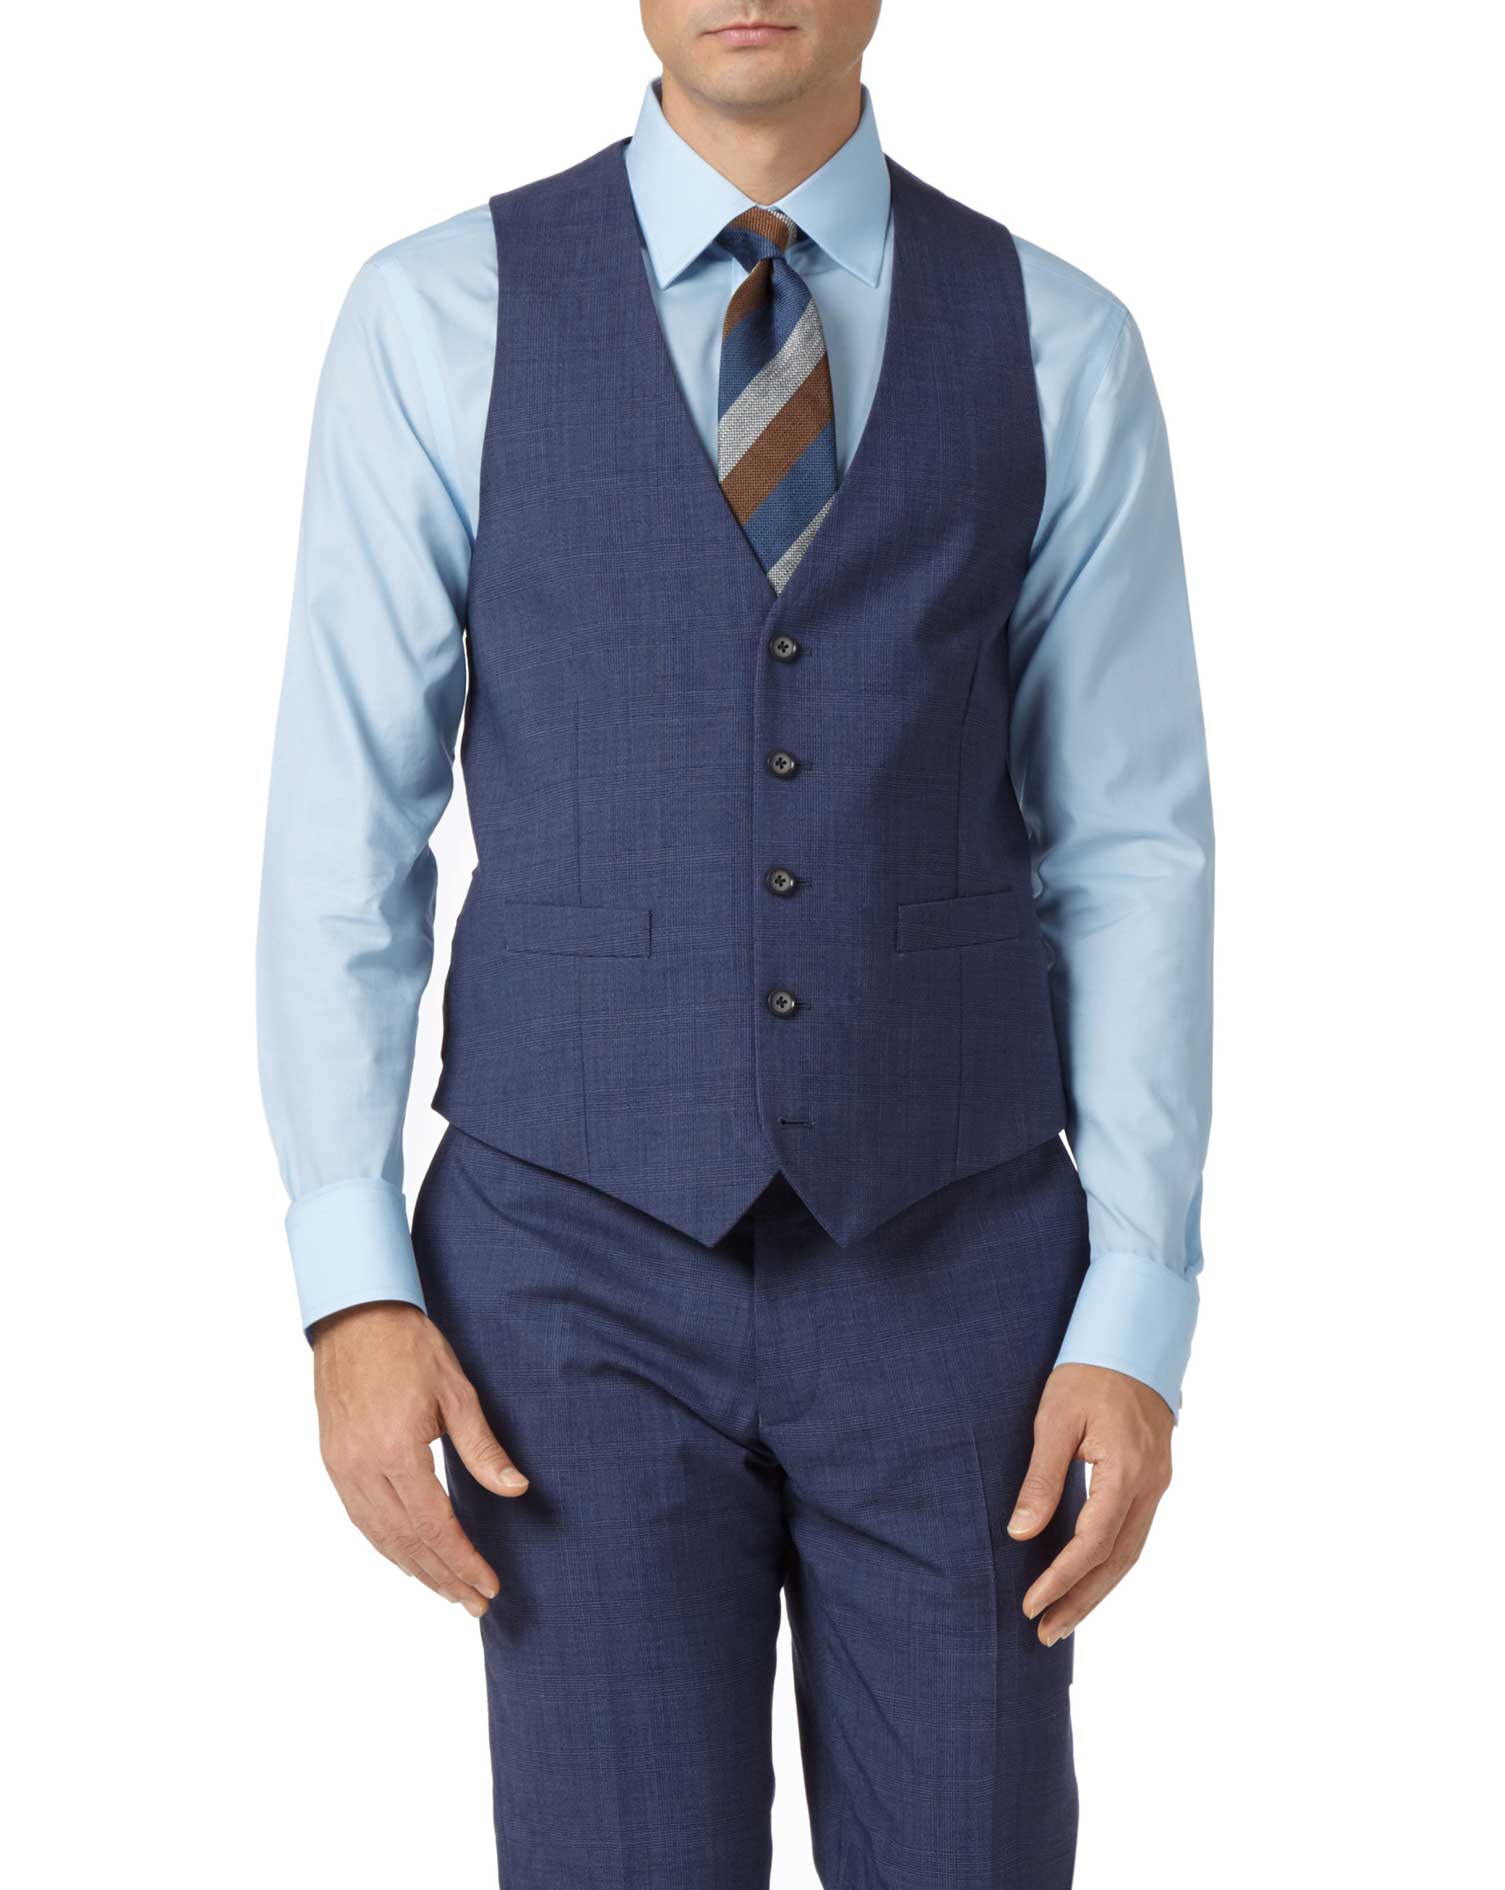 Airforce blue adjustable fit Panama check business suit vest